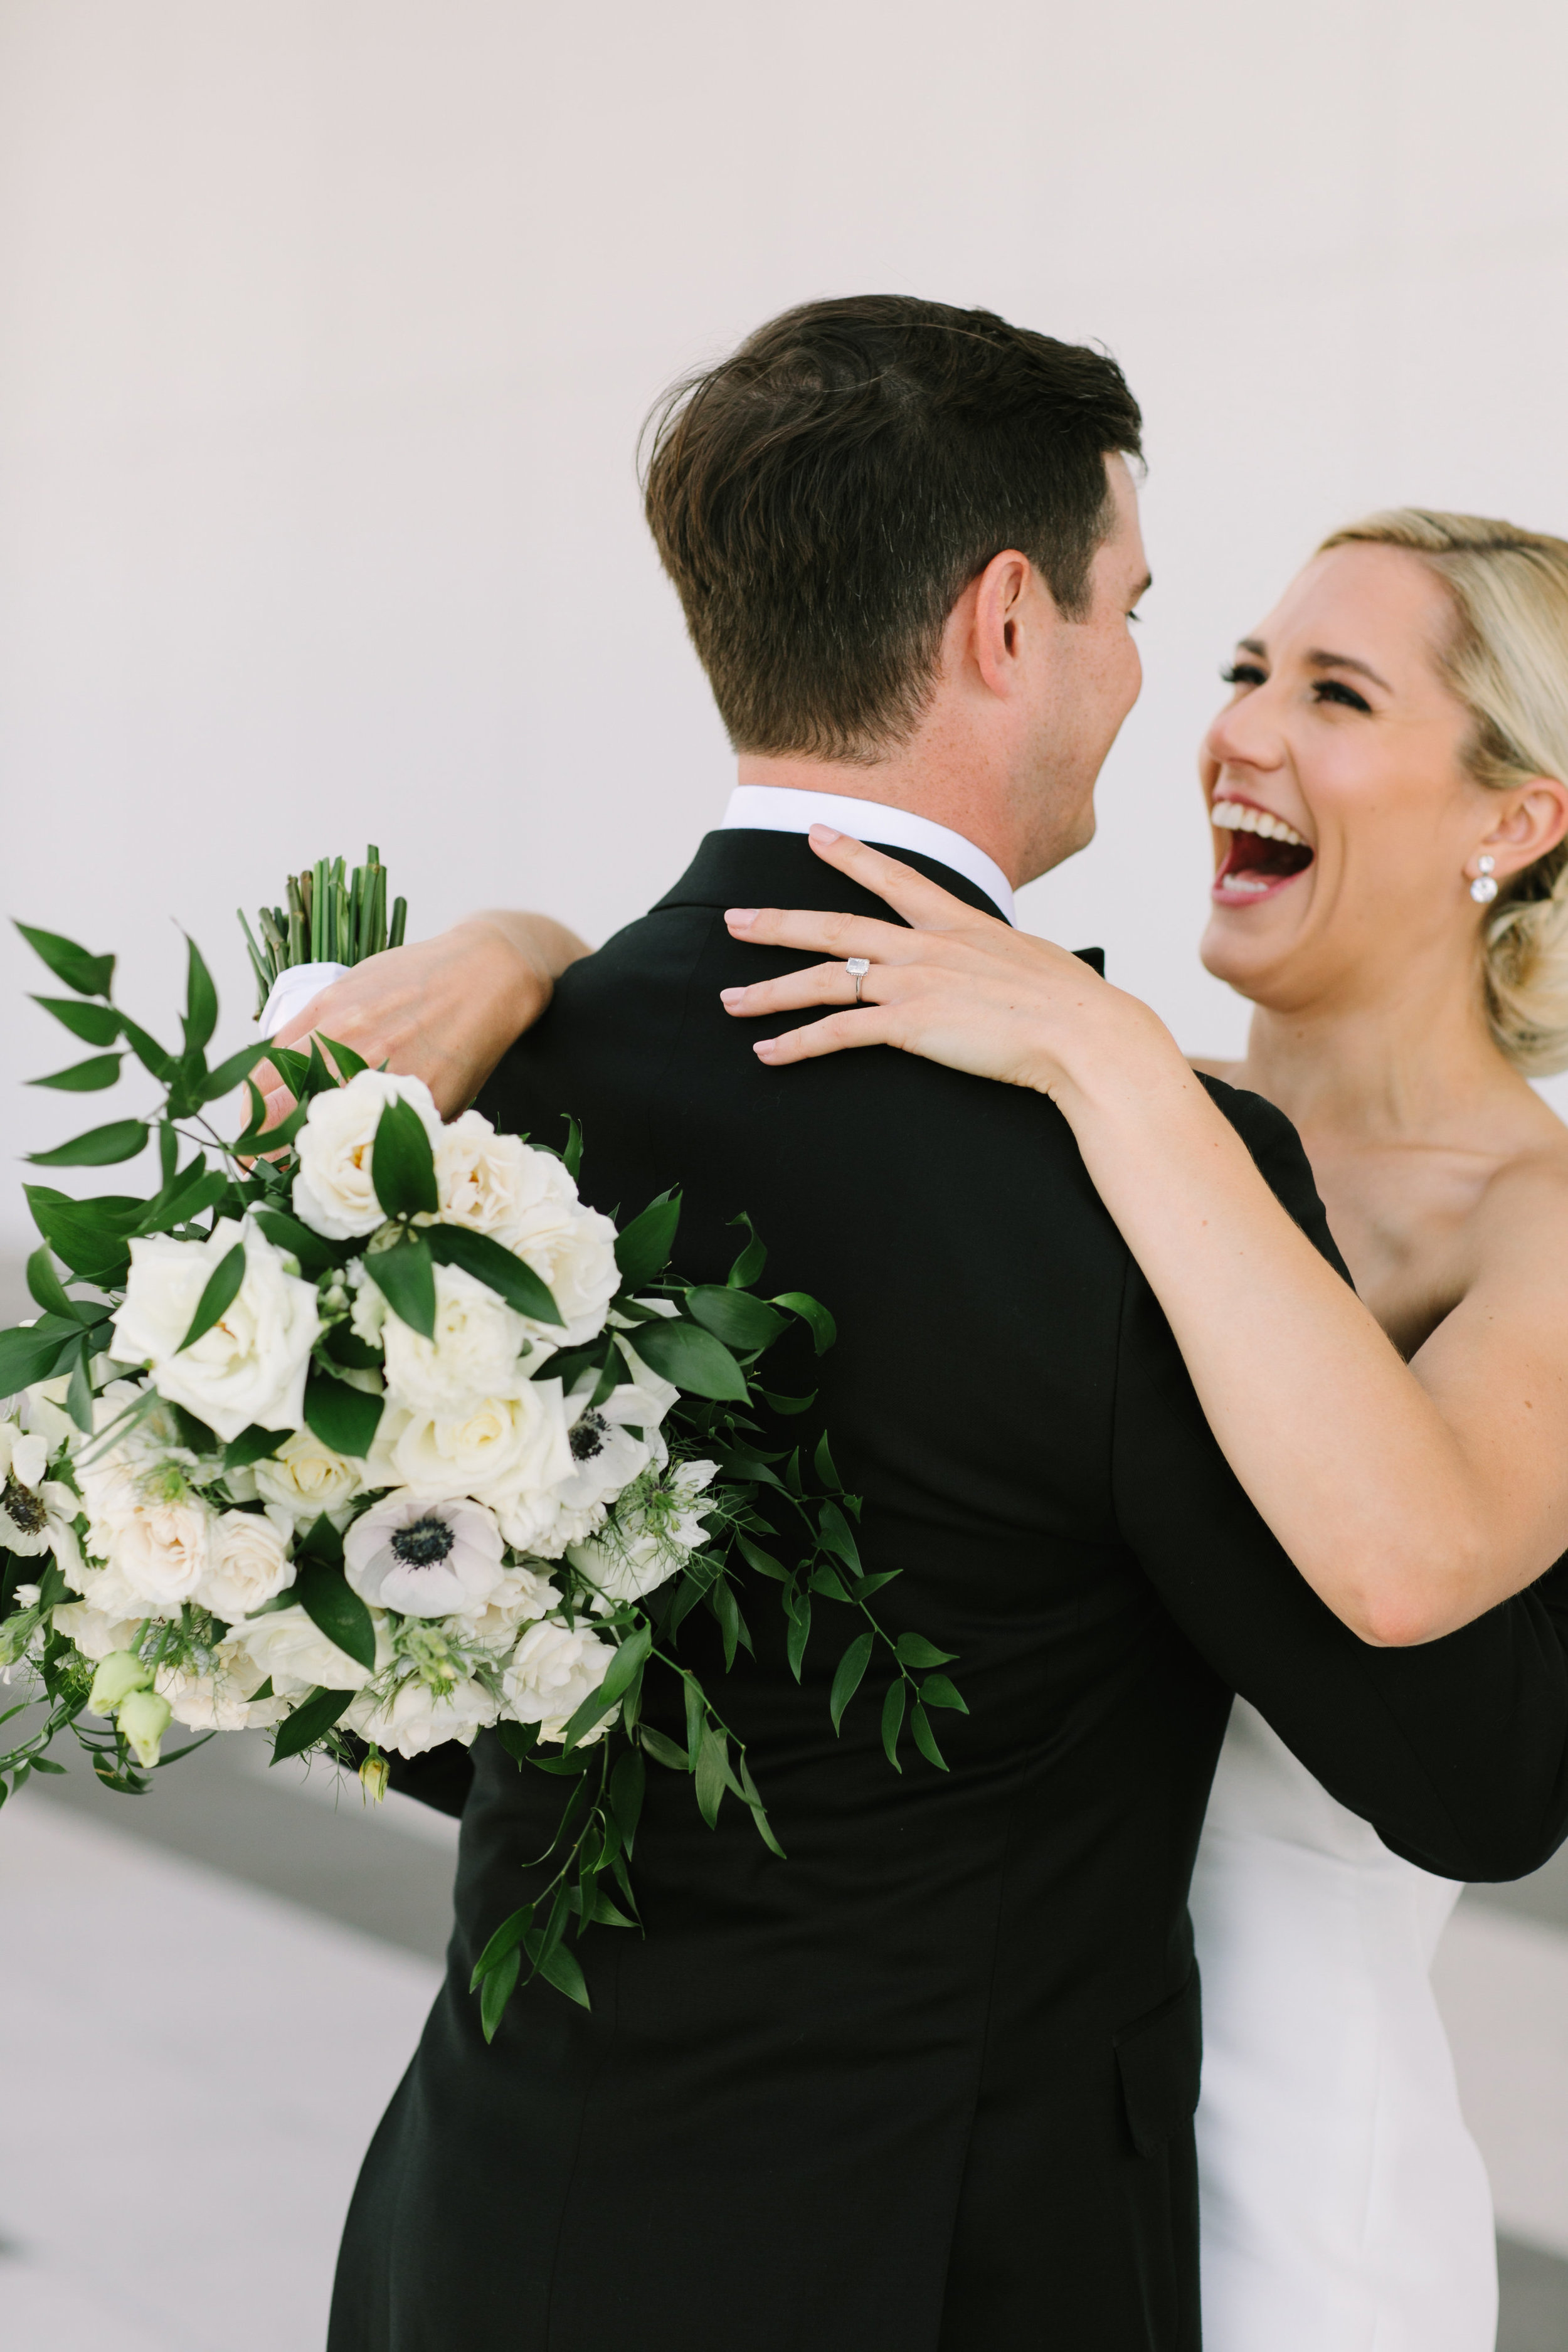 Perfect First Look - Their first look couldn't have been more perfect. These pictures give us all the feels!! We love the backdrop of the Kennedy Center for these photos. The blacks, whites and greenery mix with the clean lines of the background to create a look at is beautifully classic and fresh!